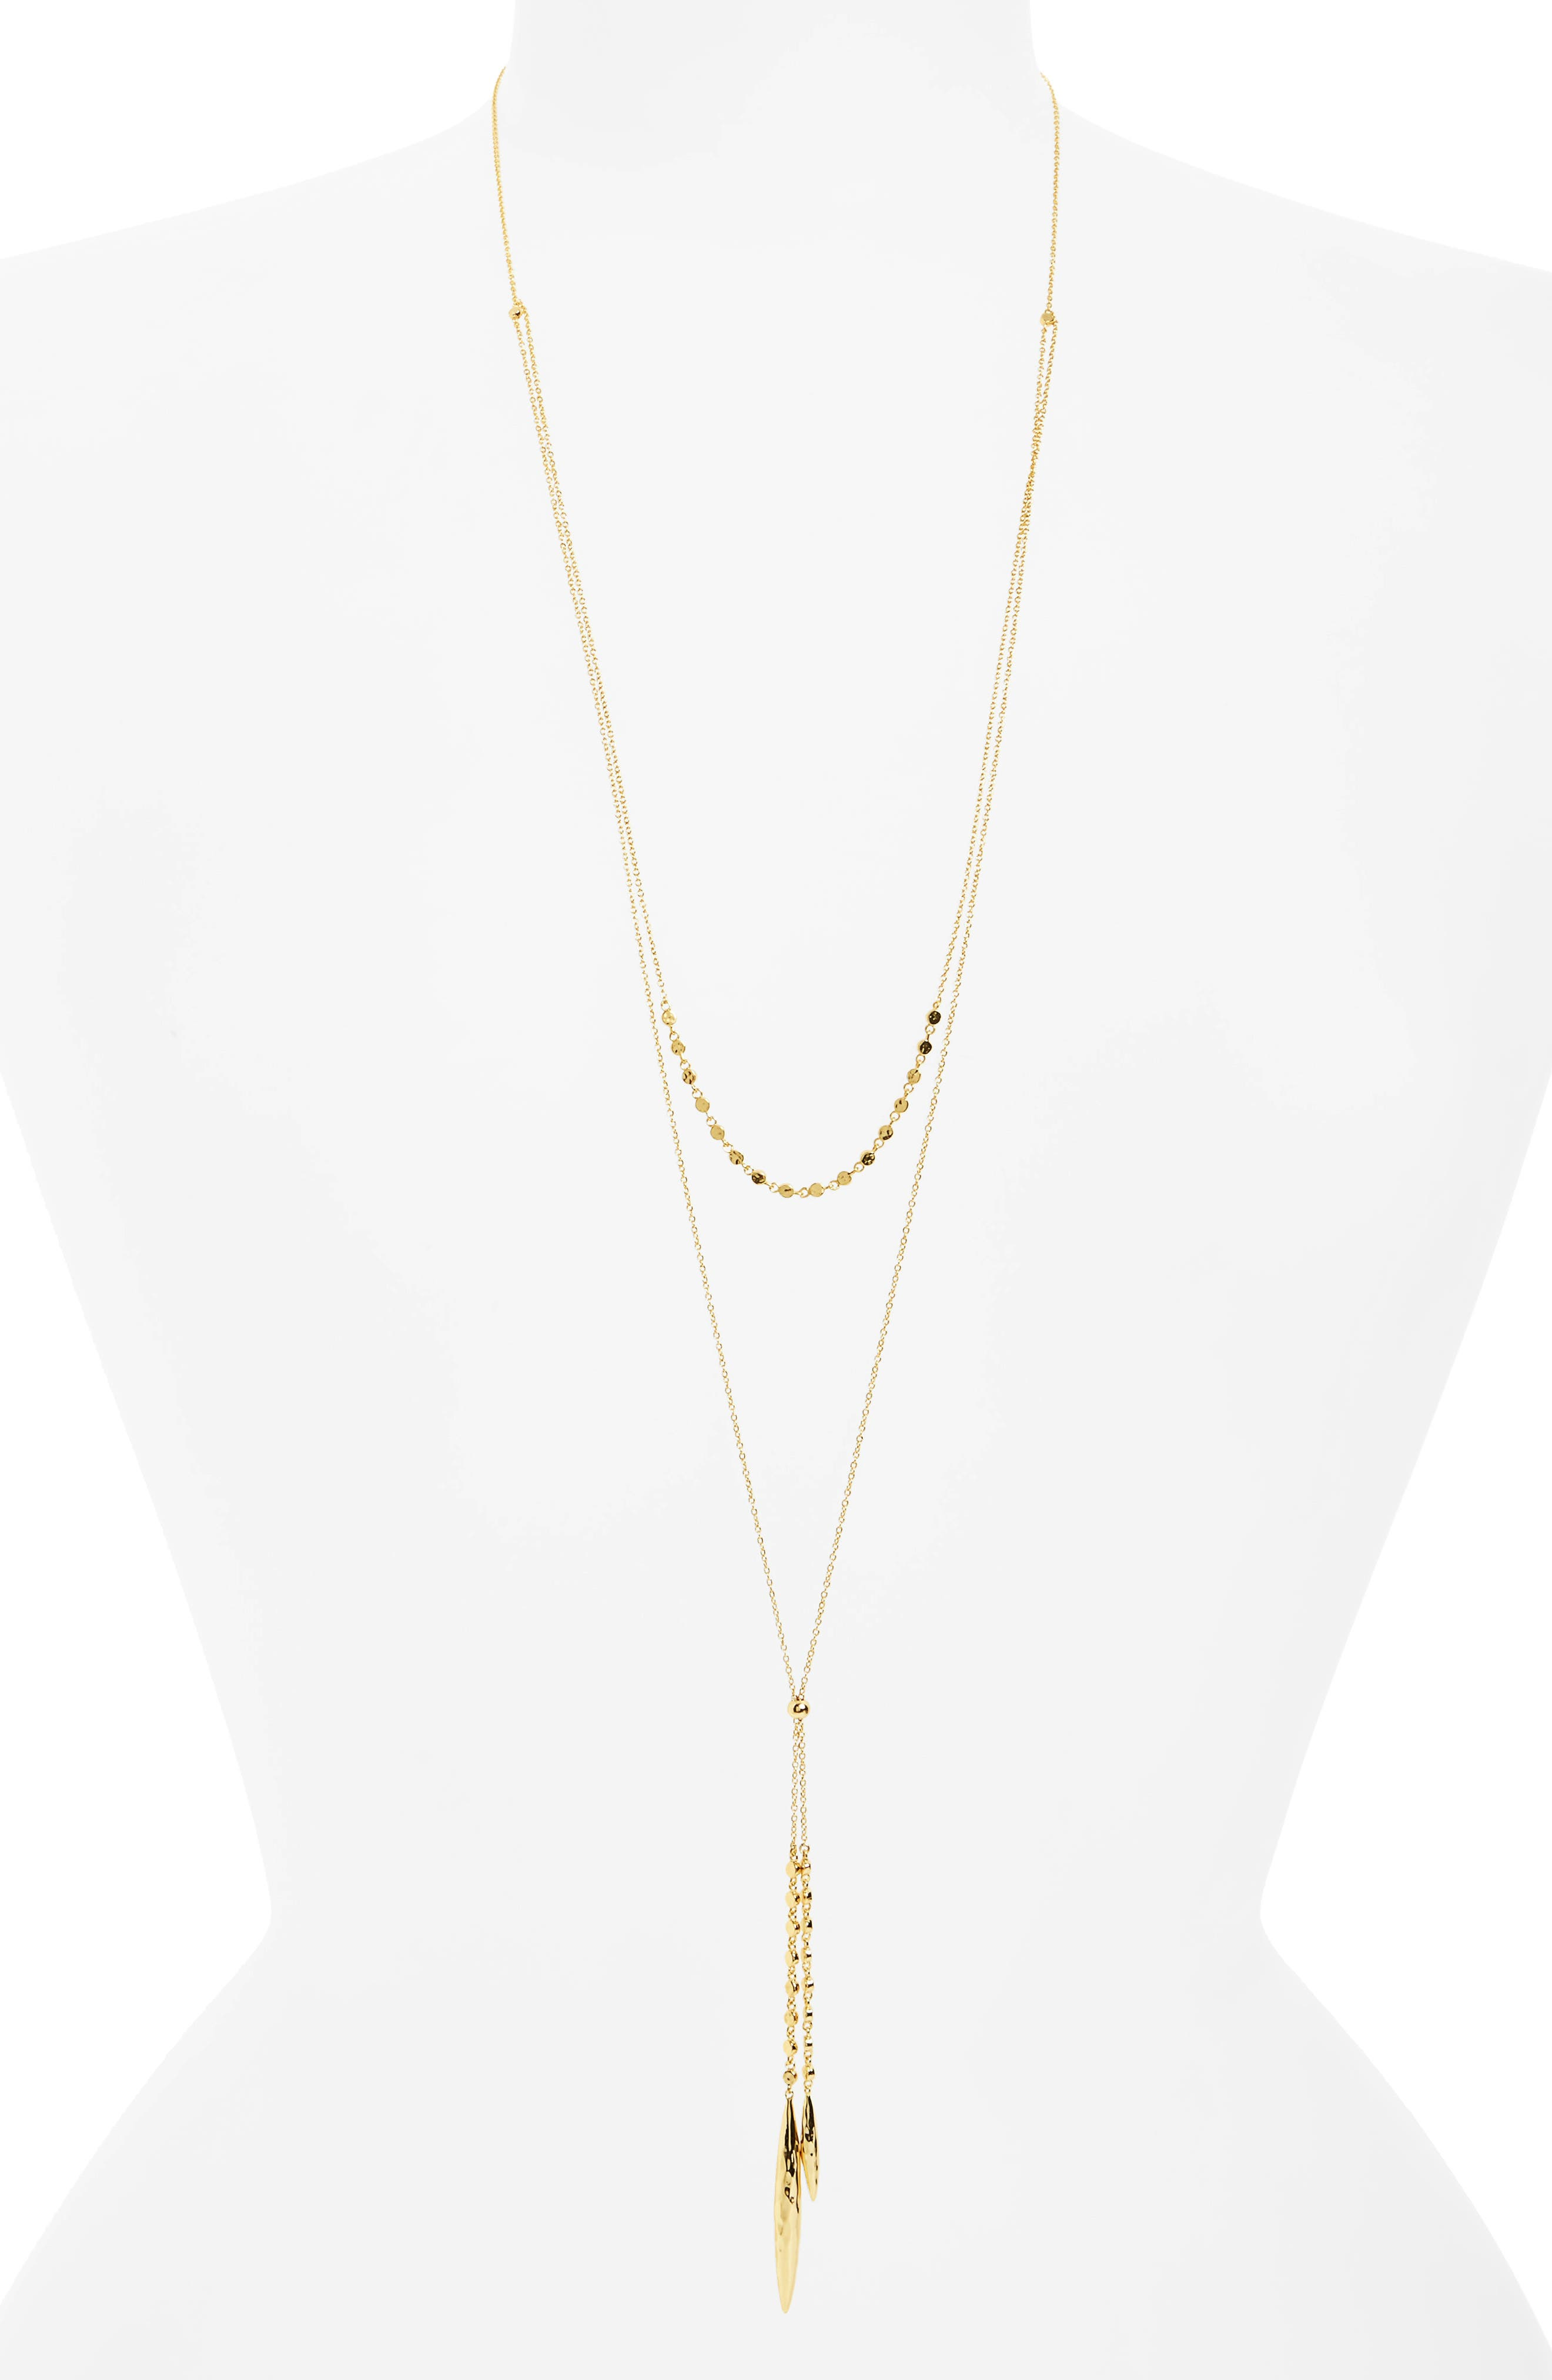 Chloe Multistrand Necklace,                         Main,                         color, Gold